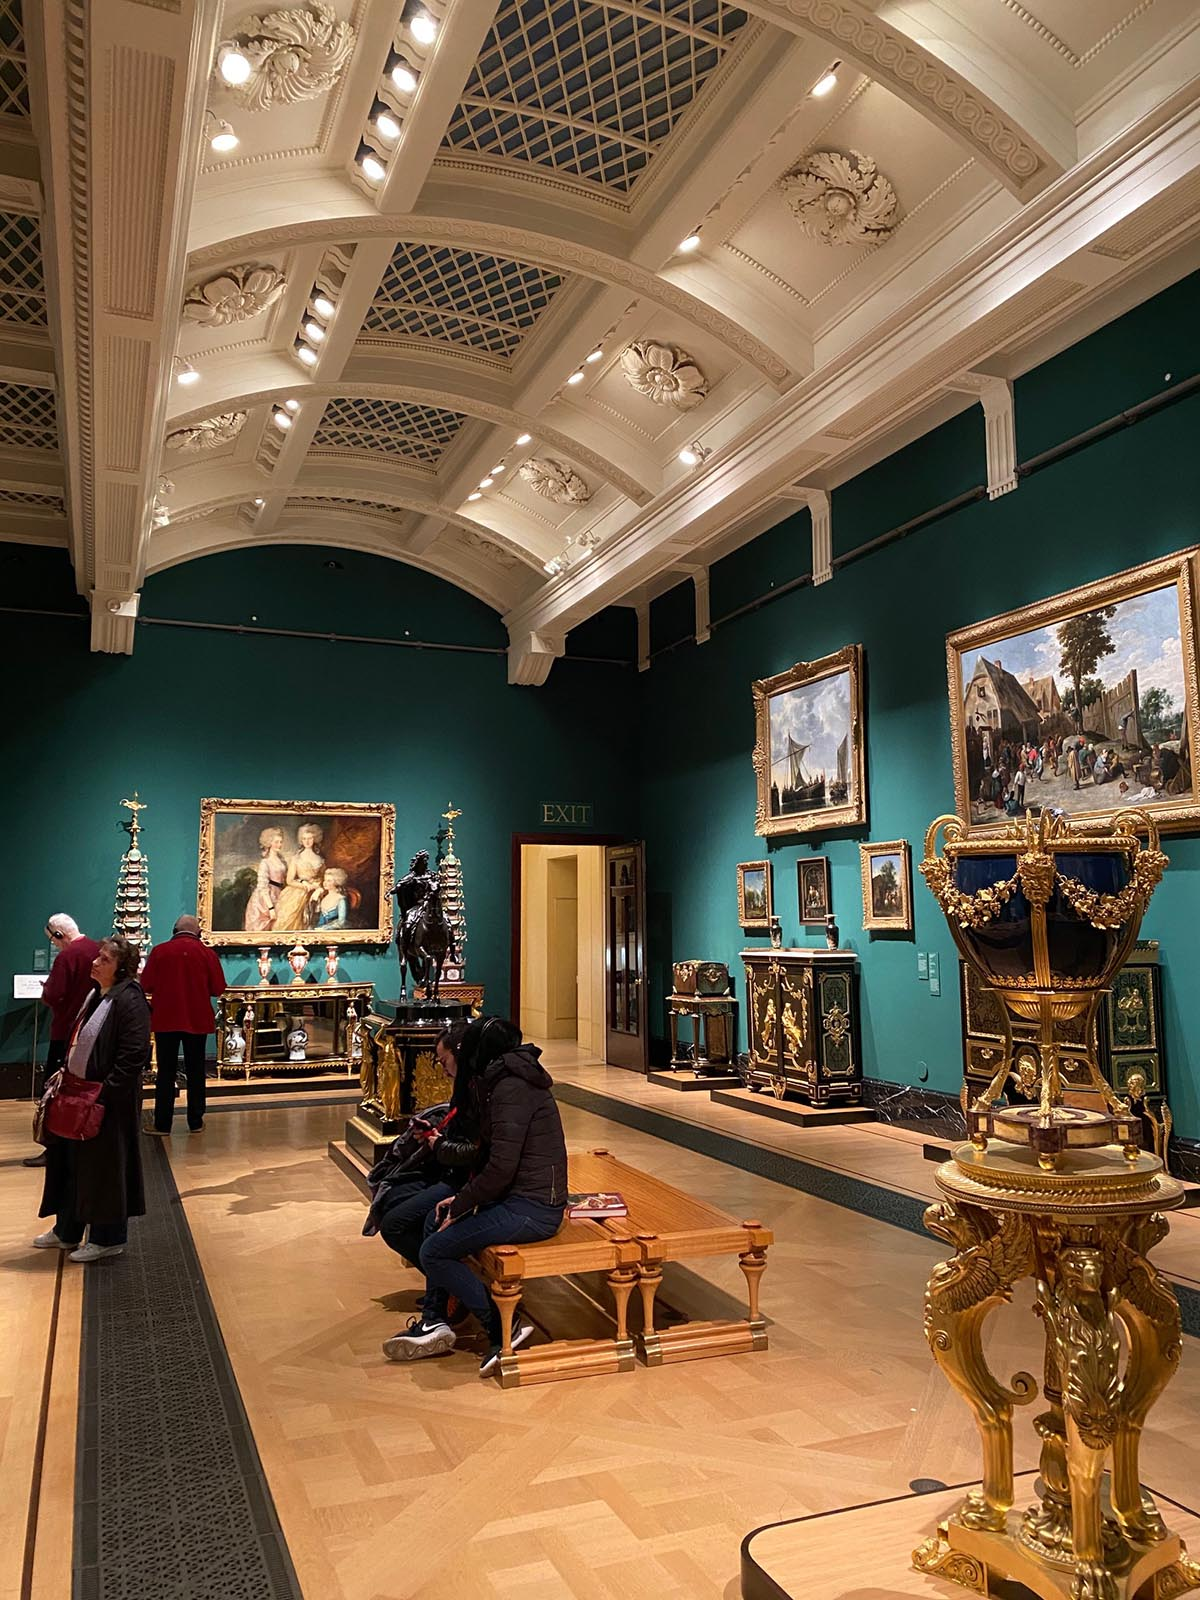 George IV: Art & Spectacle is currently showing at The Queen's Gallery.